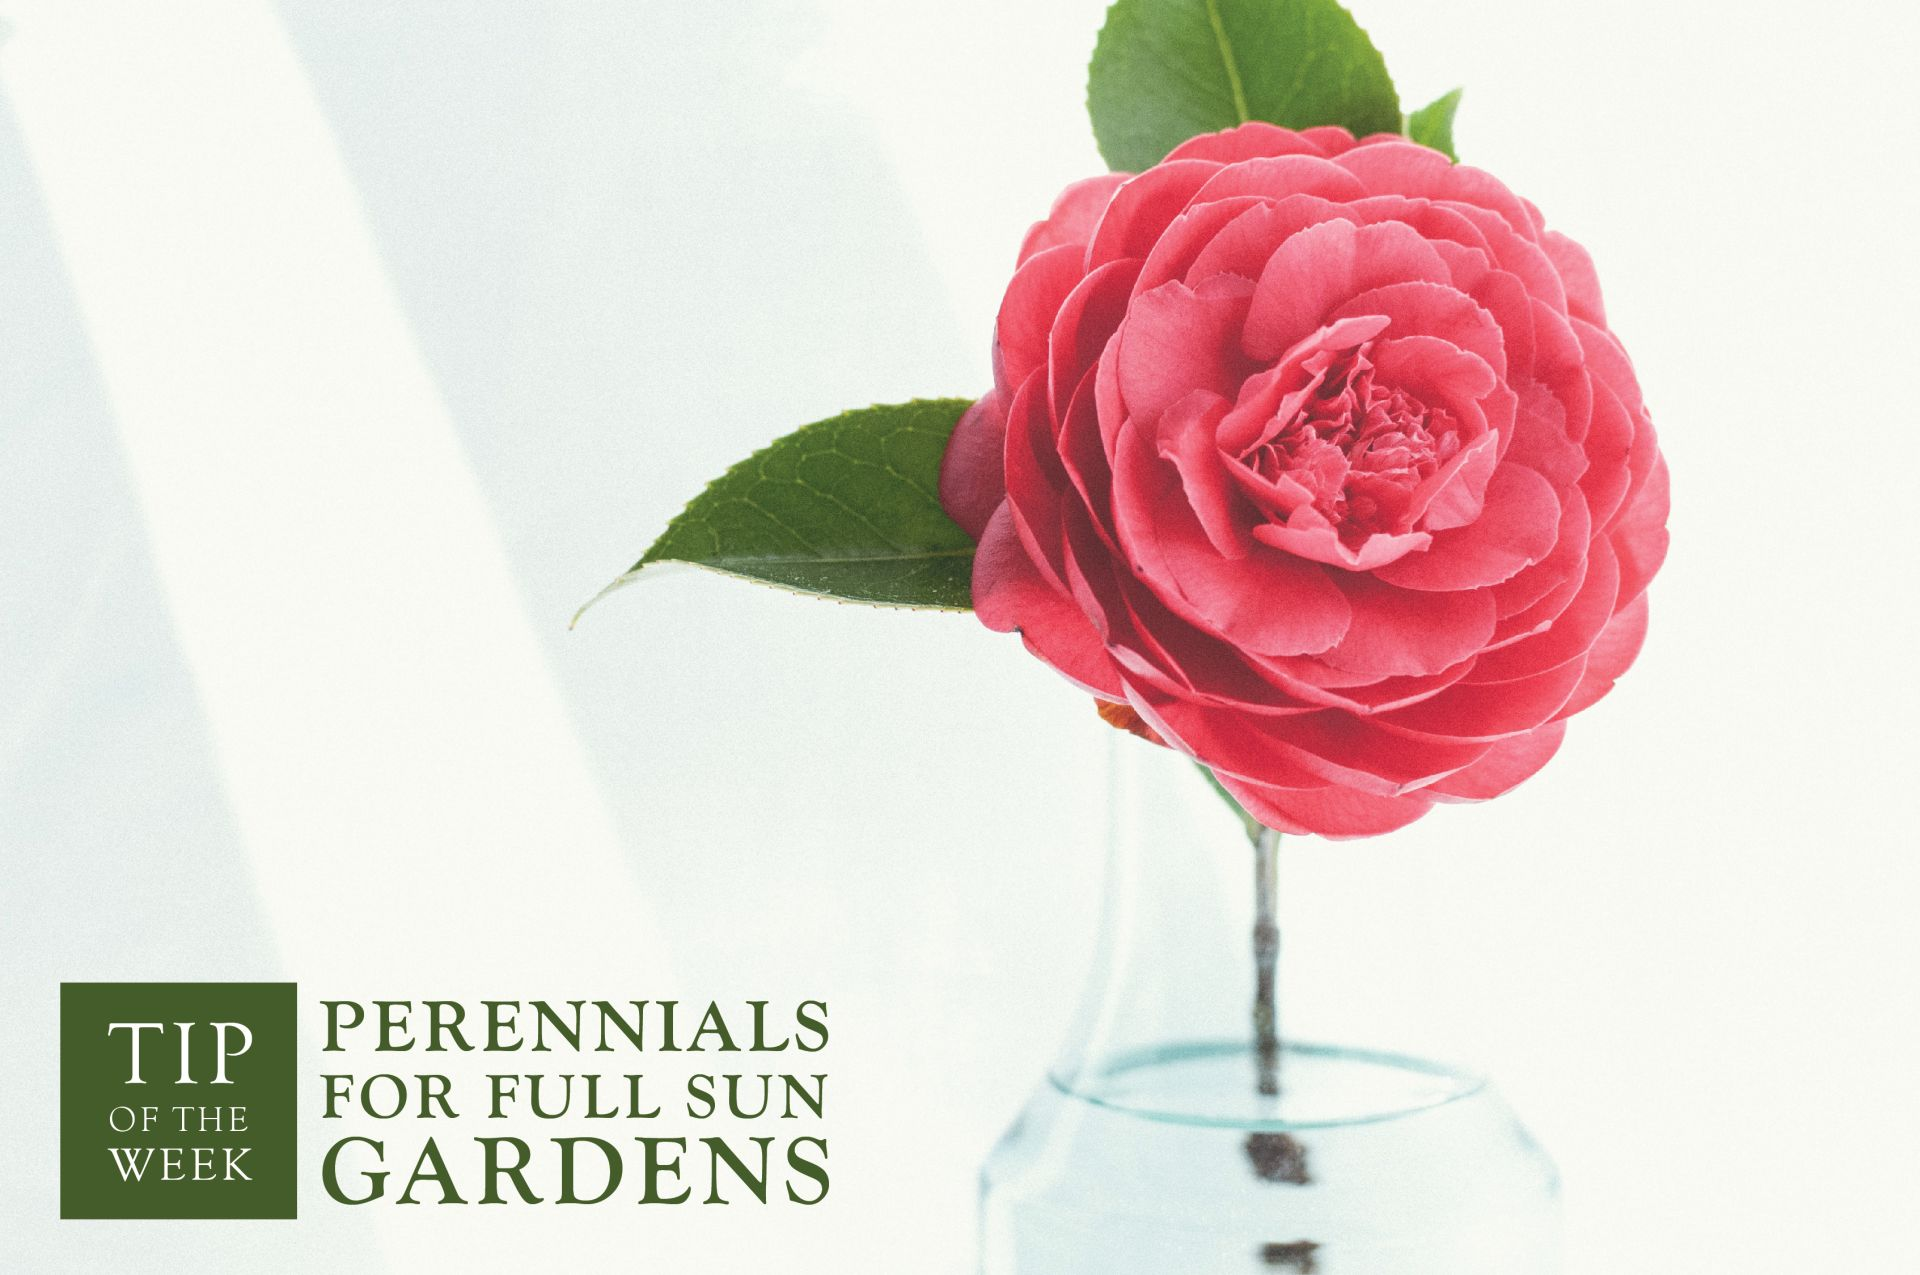 Perennials For Full Sun Gardens